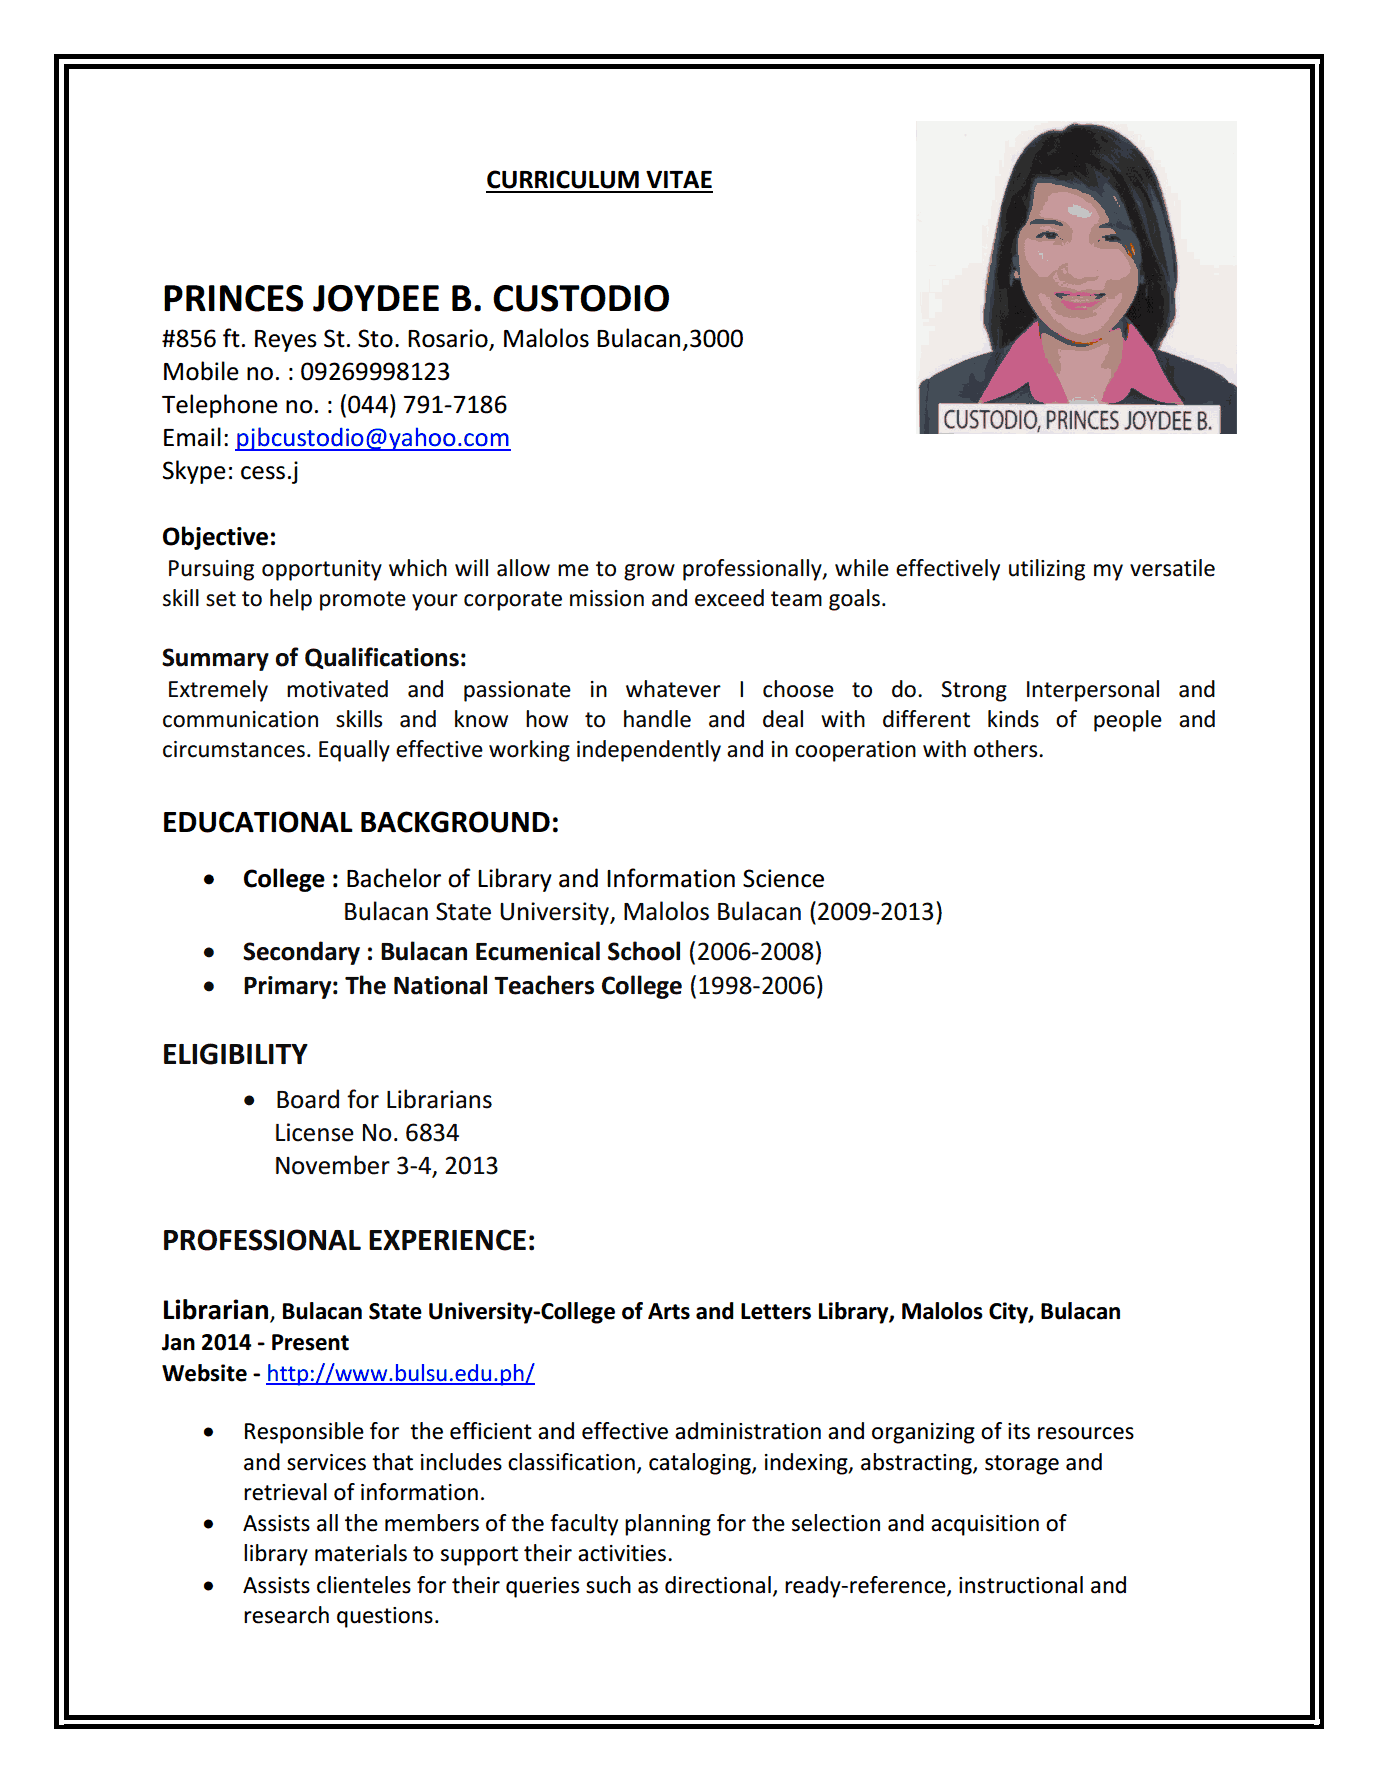 Resume Resume Example For Library Job hiring librarians custodio1 custodio2 custodio3